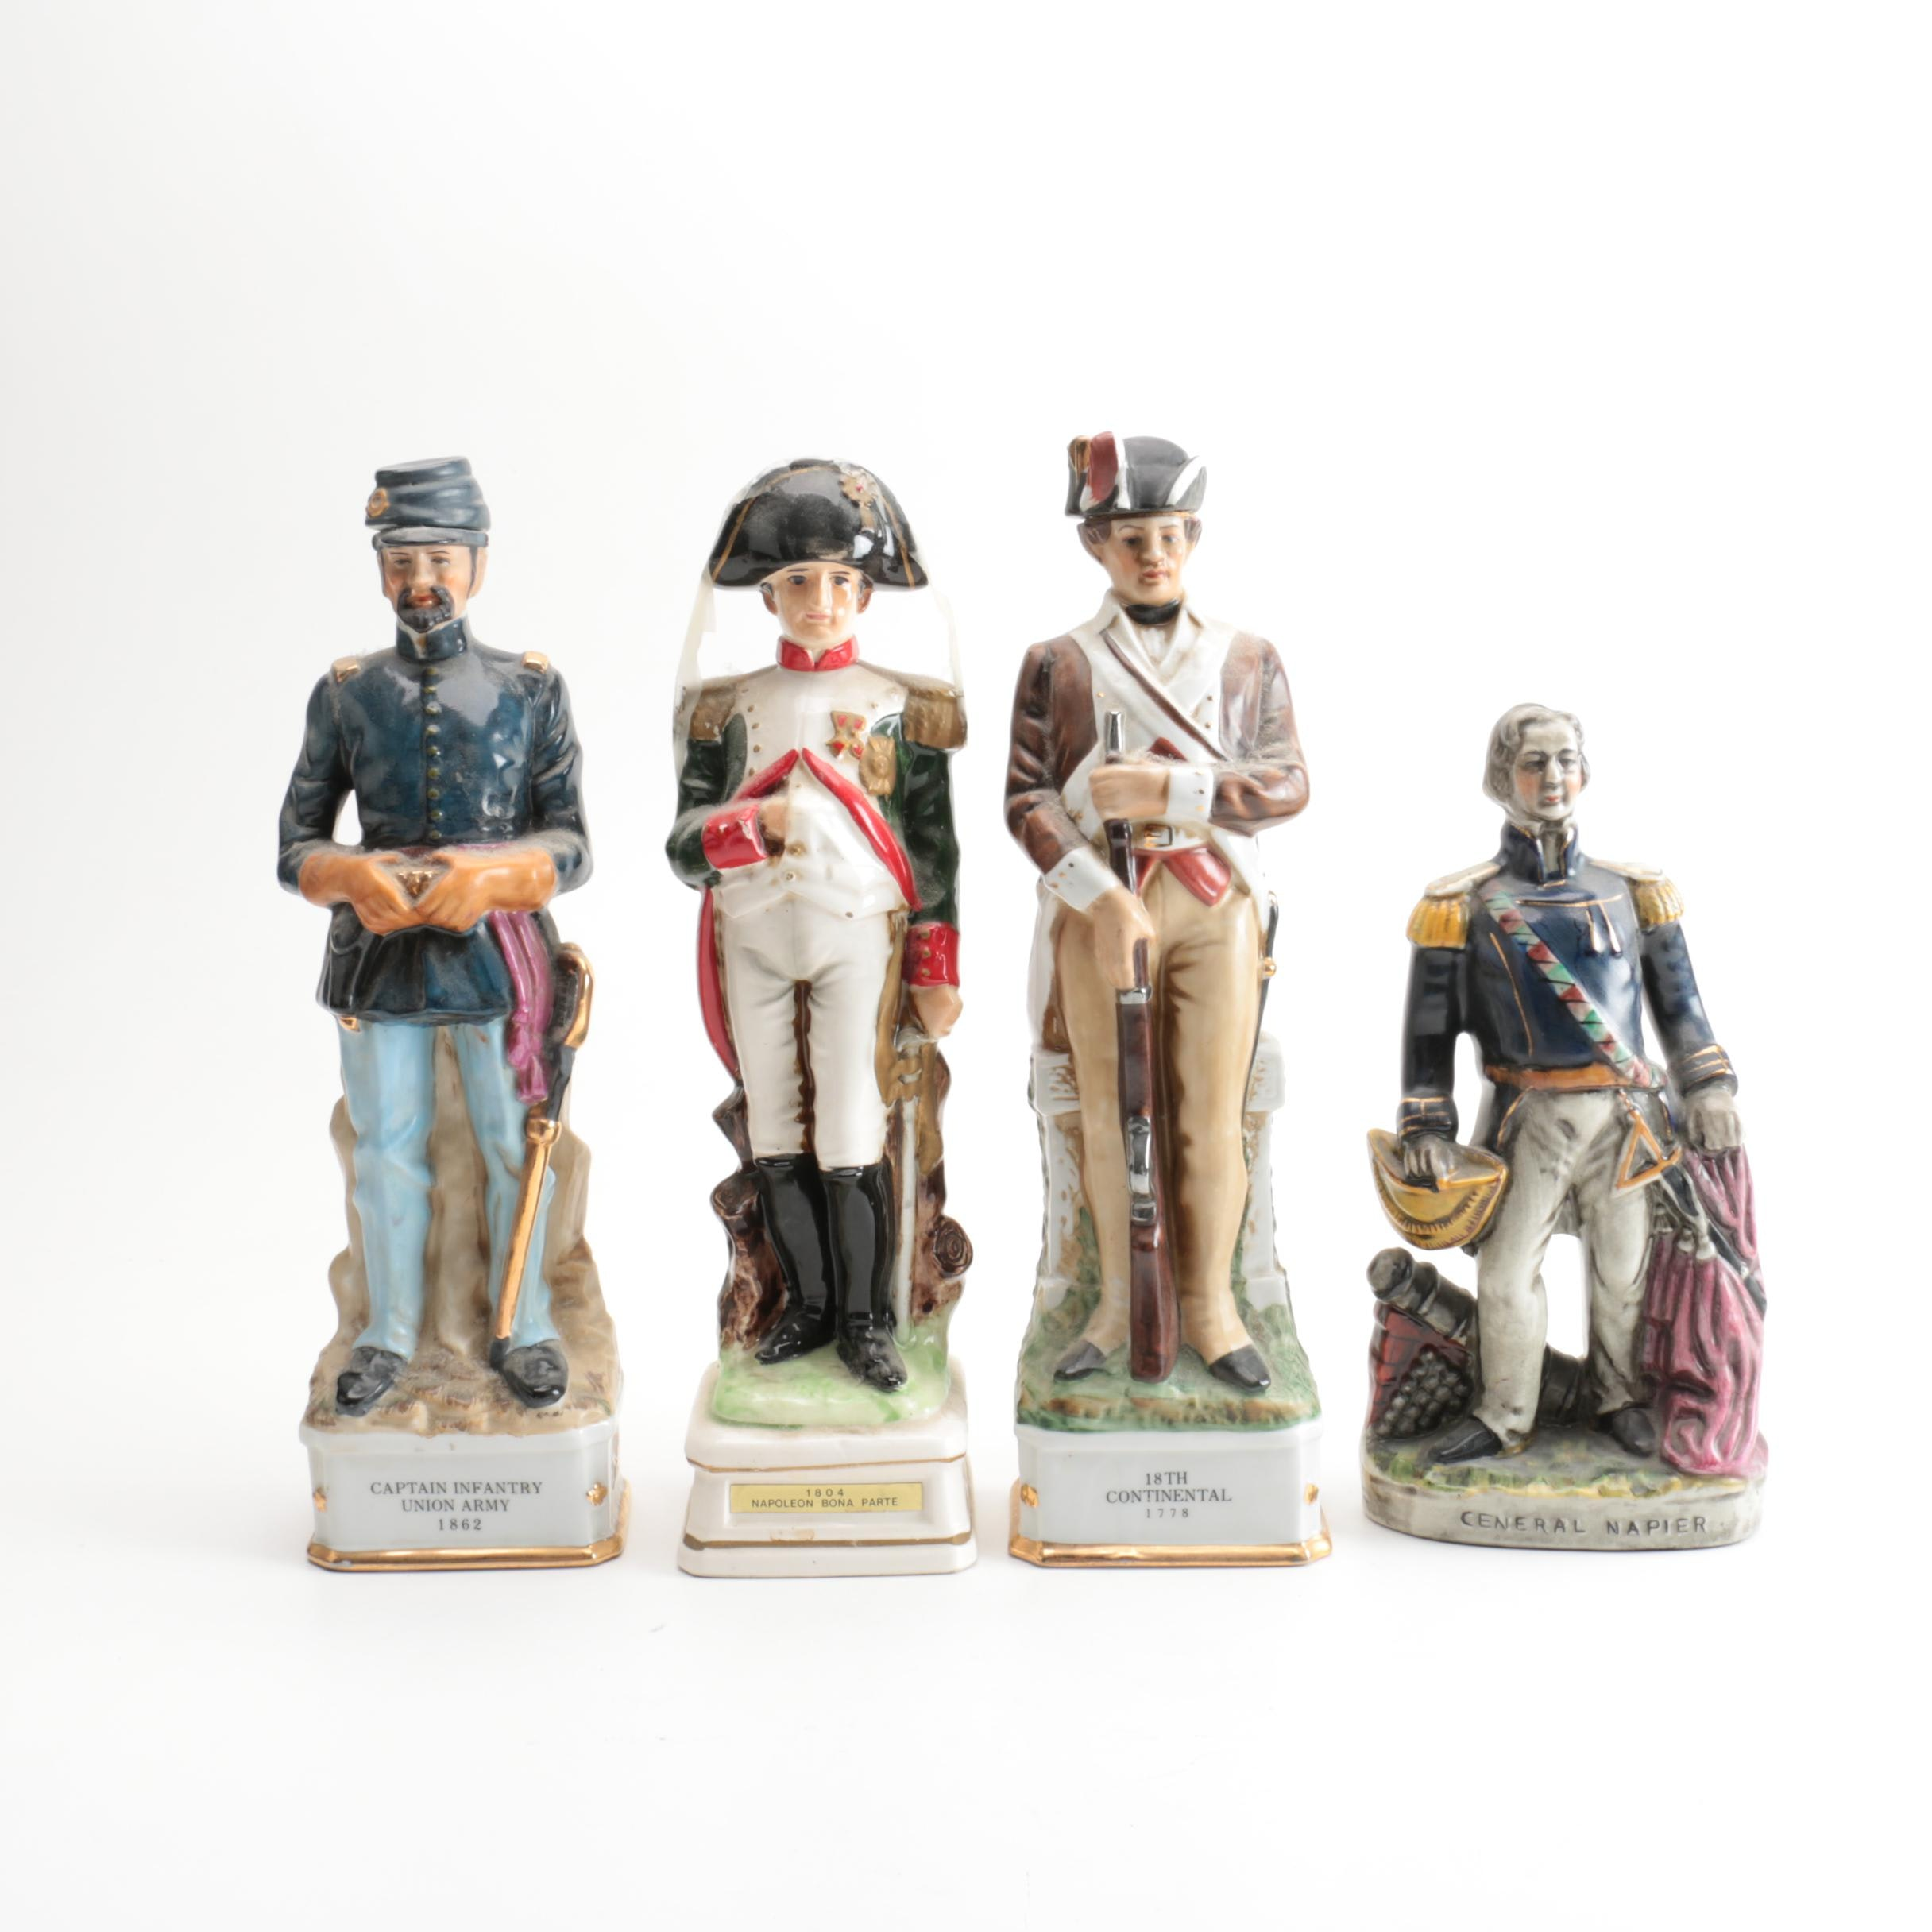 Napoleon Music Box with General Napier and Two Soldier Bottles